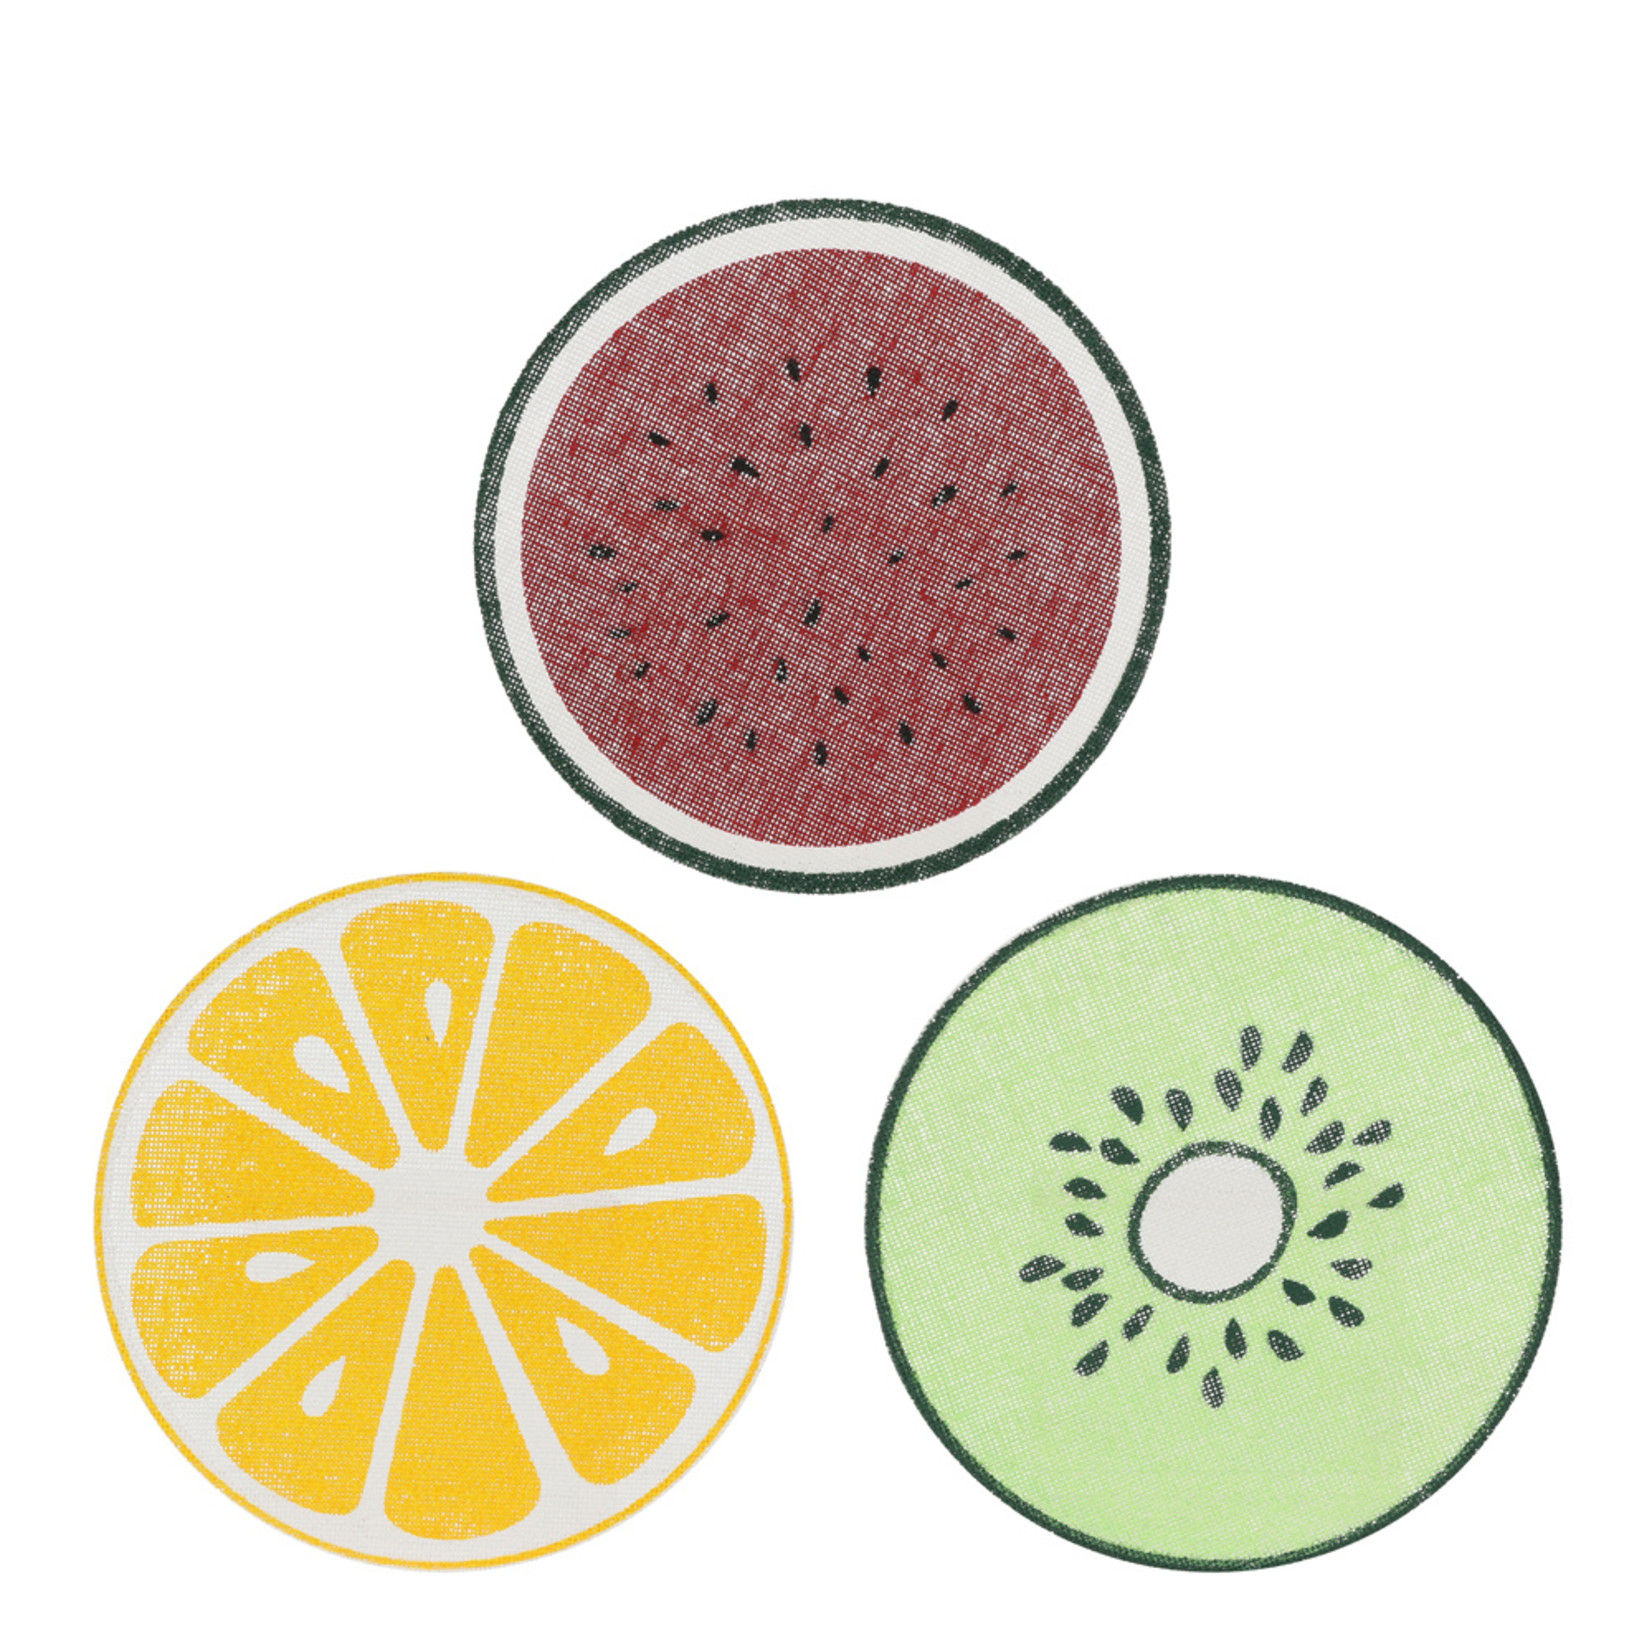 MiCa 1053917 Place mat red yellow green 3 assorted